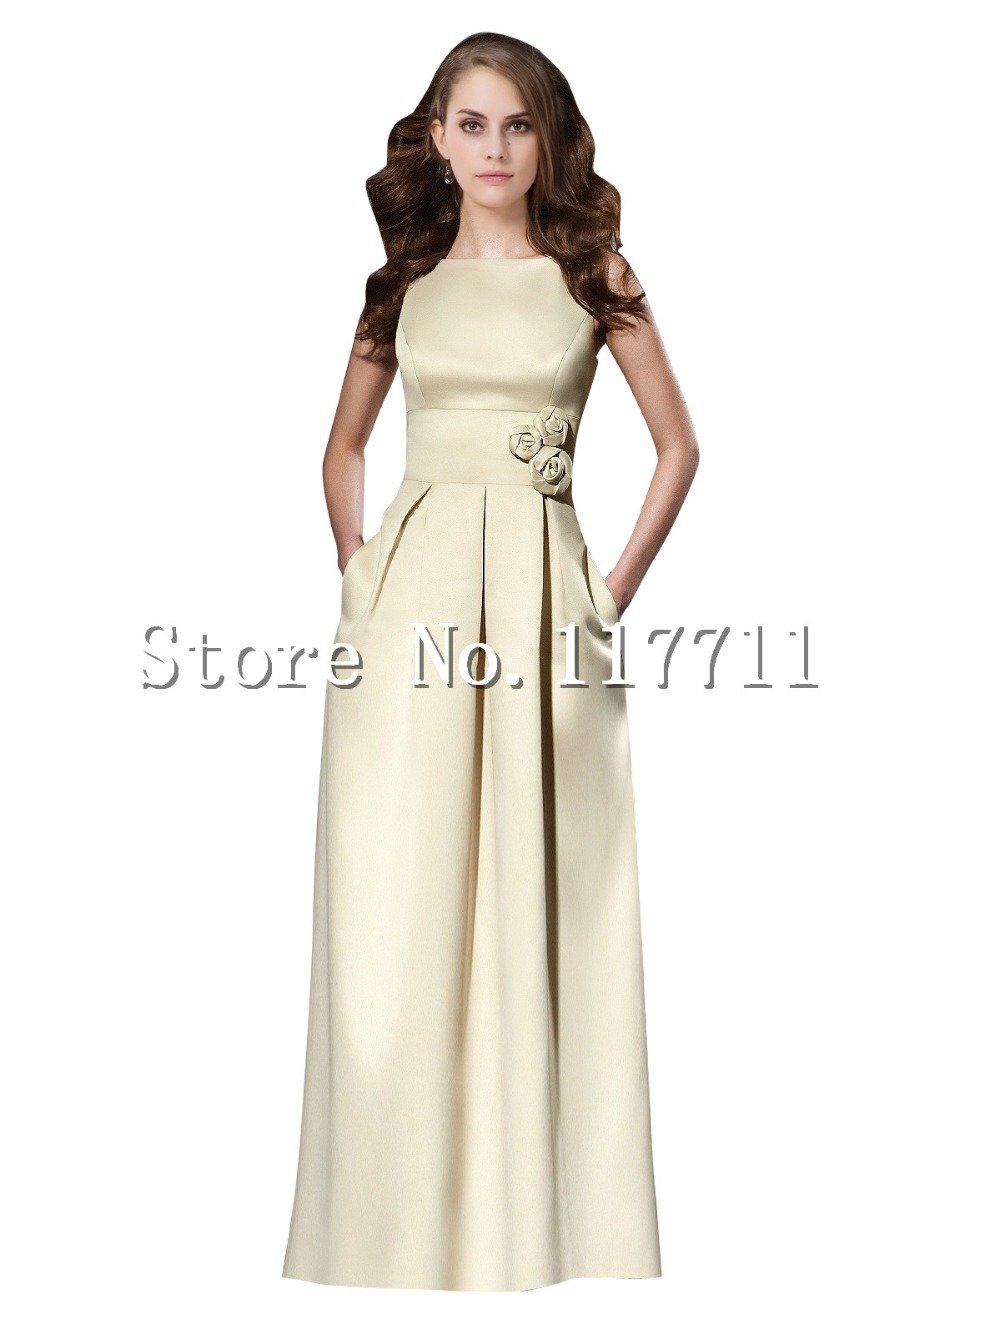 Searching the largest collection of Cheap Dresses Free Shipping at the cheapest price in inerloadsr5s.gq Here offers all kinds of Cheap Dresses Free Shipping with the unique styles. Buy Cheap Dresses Free Shipping in Tbdress, you will get the best service and high discount.